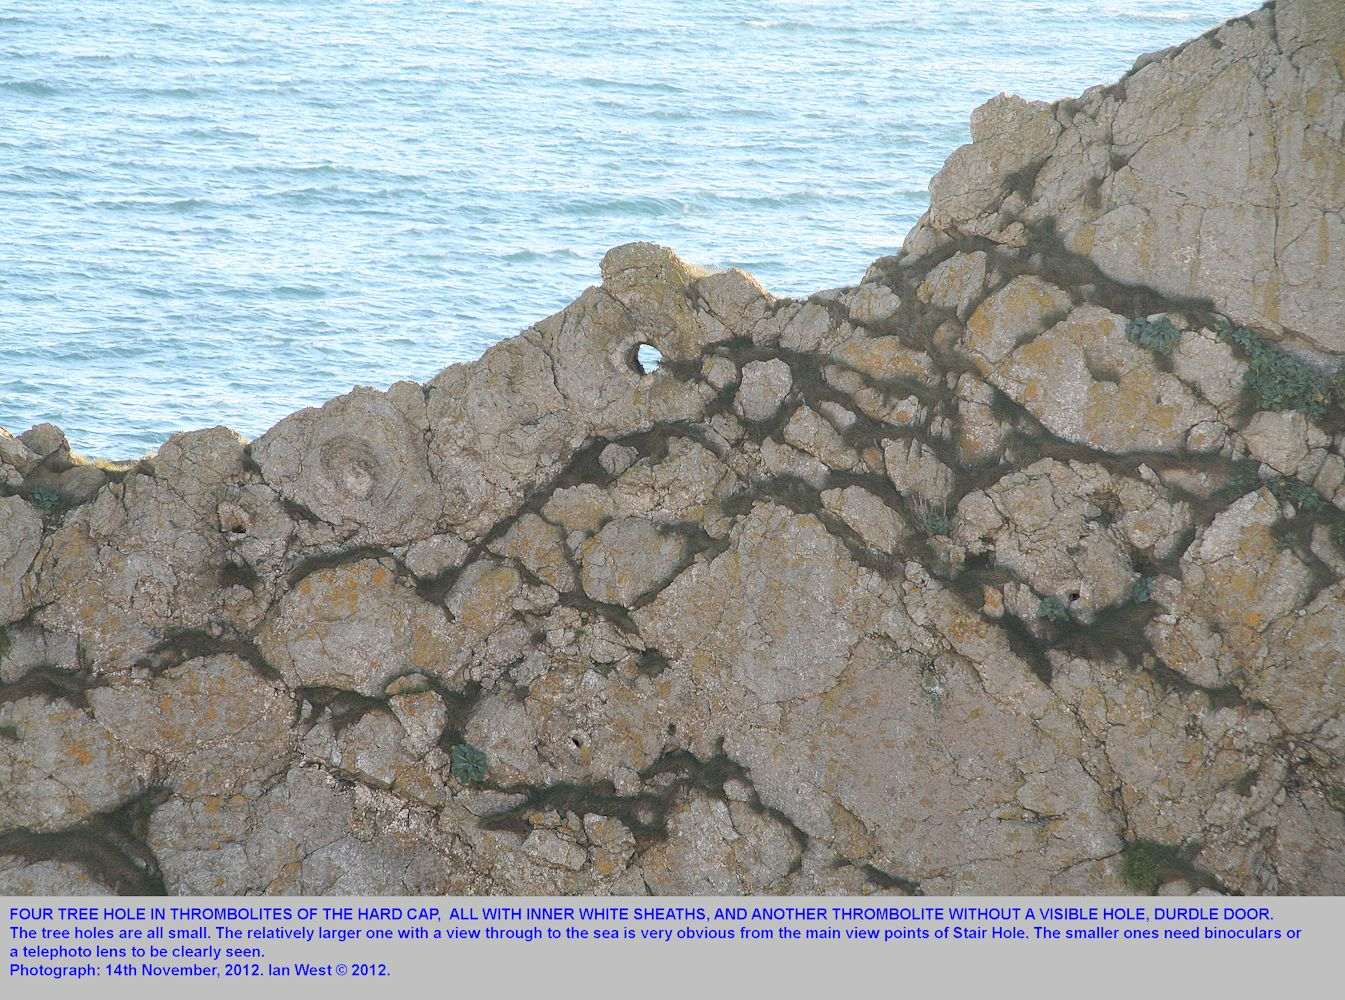 Several tree holes and surrounding thrombolites in the north face of Durdle Door, near Lulworth Cove, Dorset, 14th November 2012